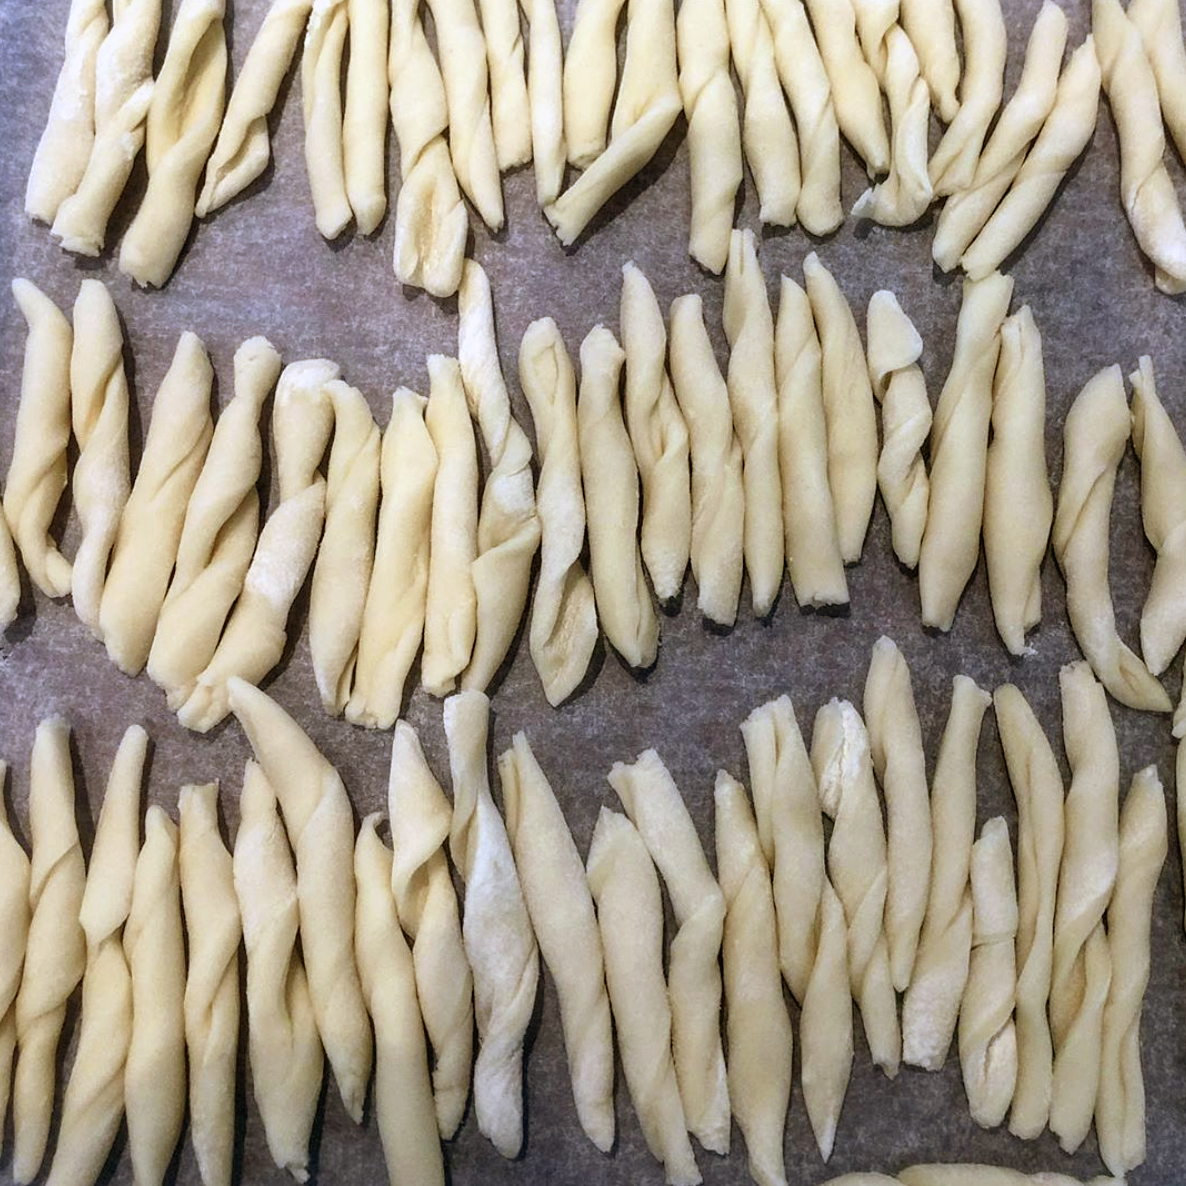 Photo of Fresh Pasta - Strozzapreti - 300g